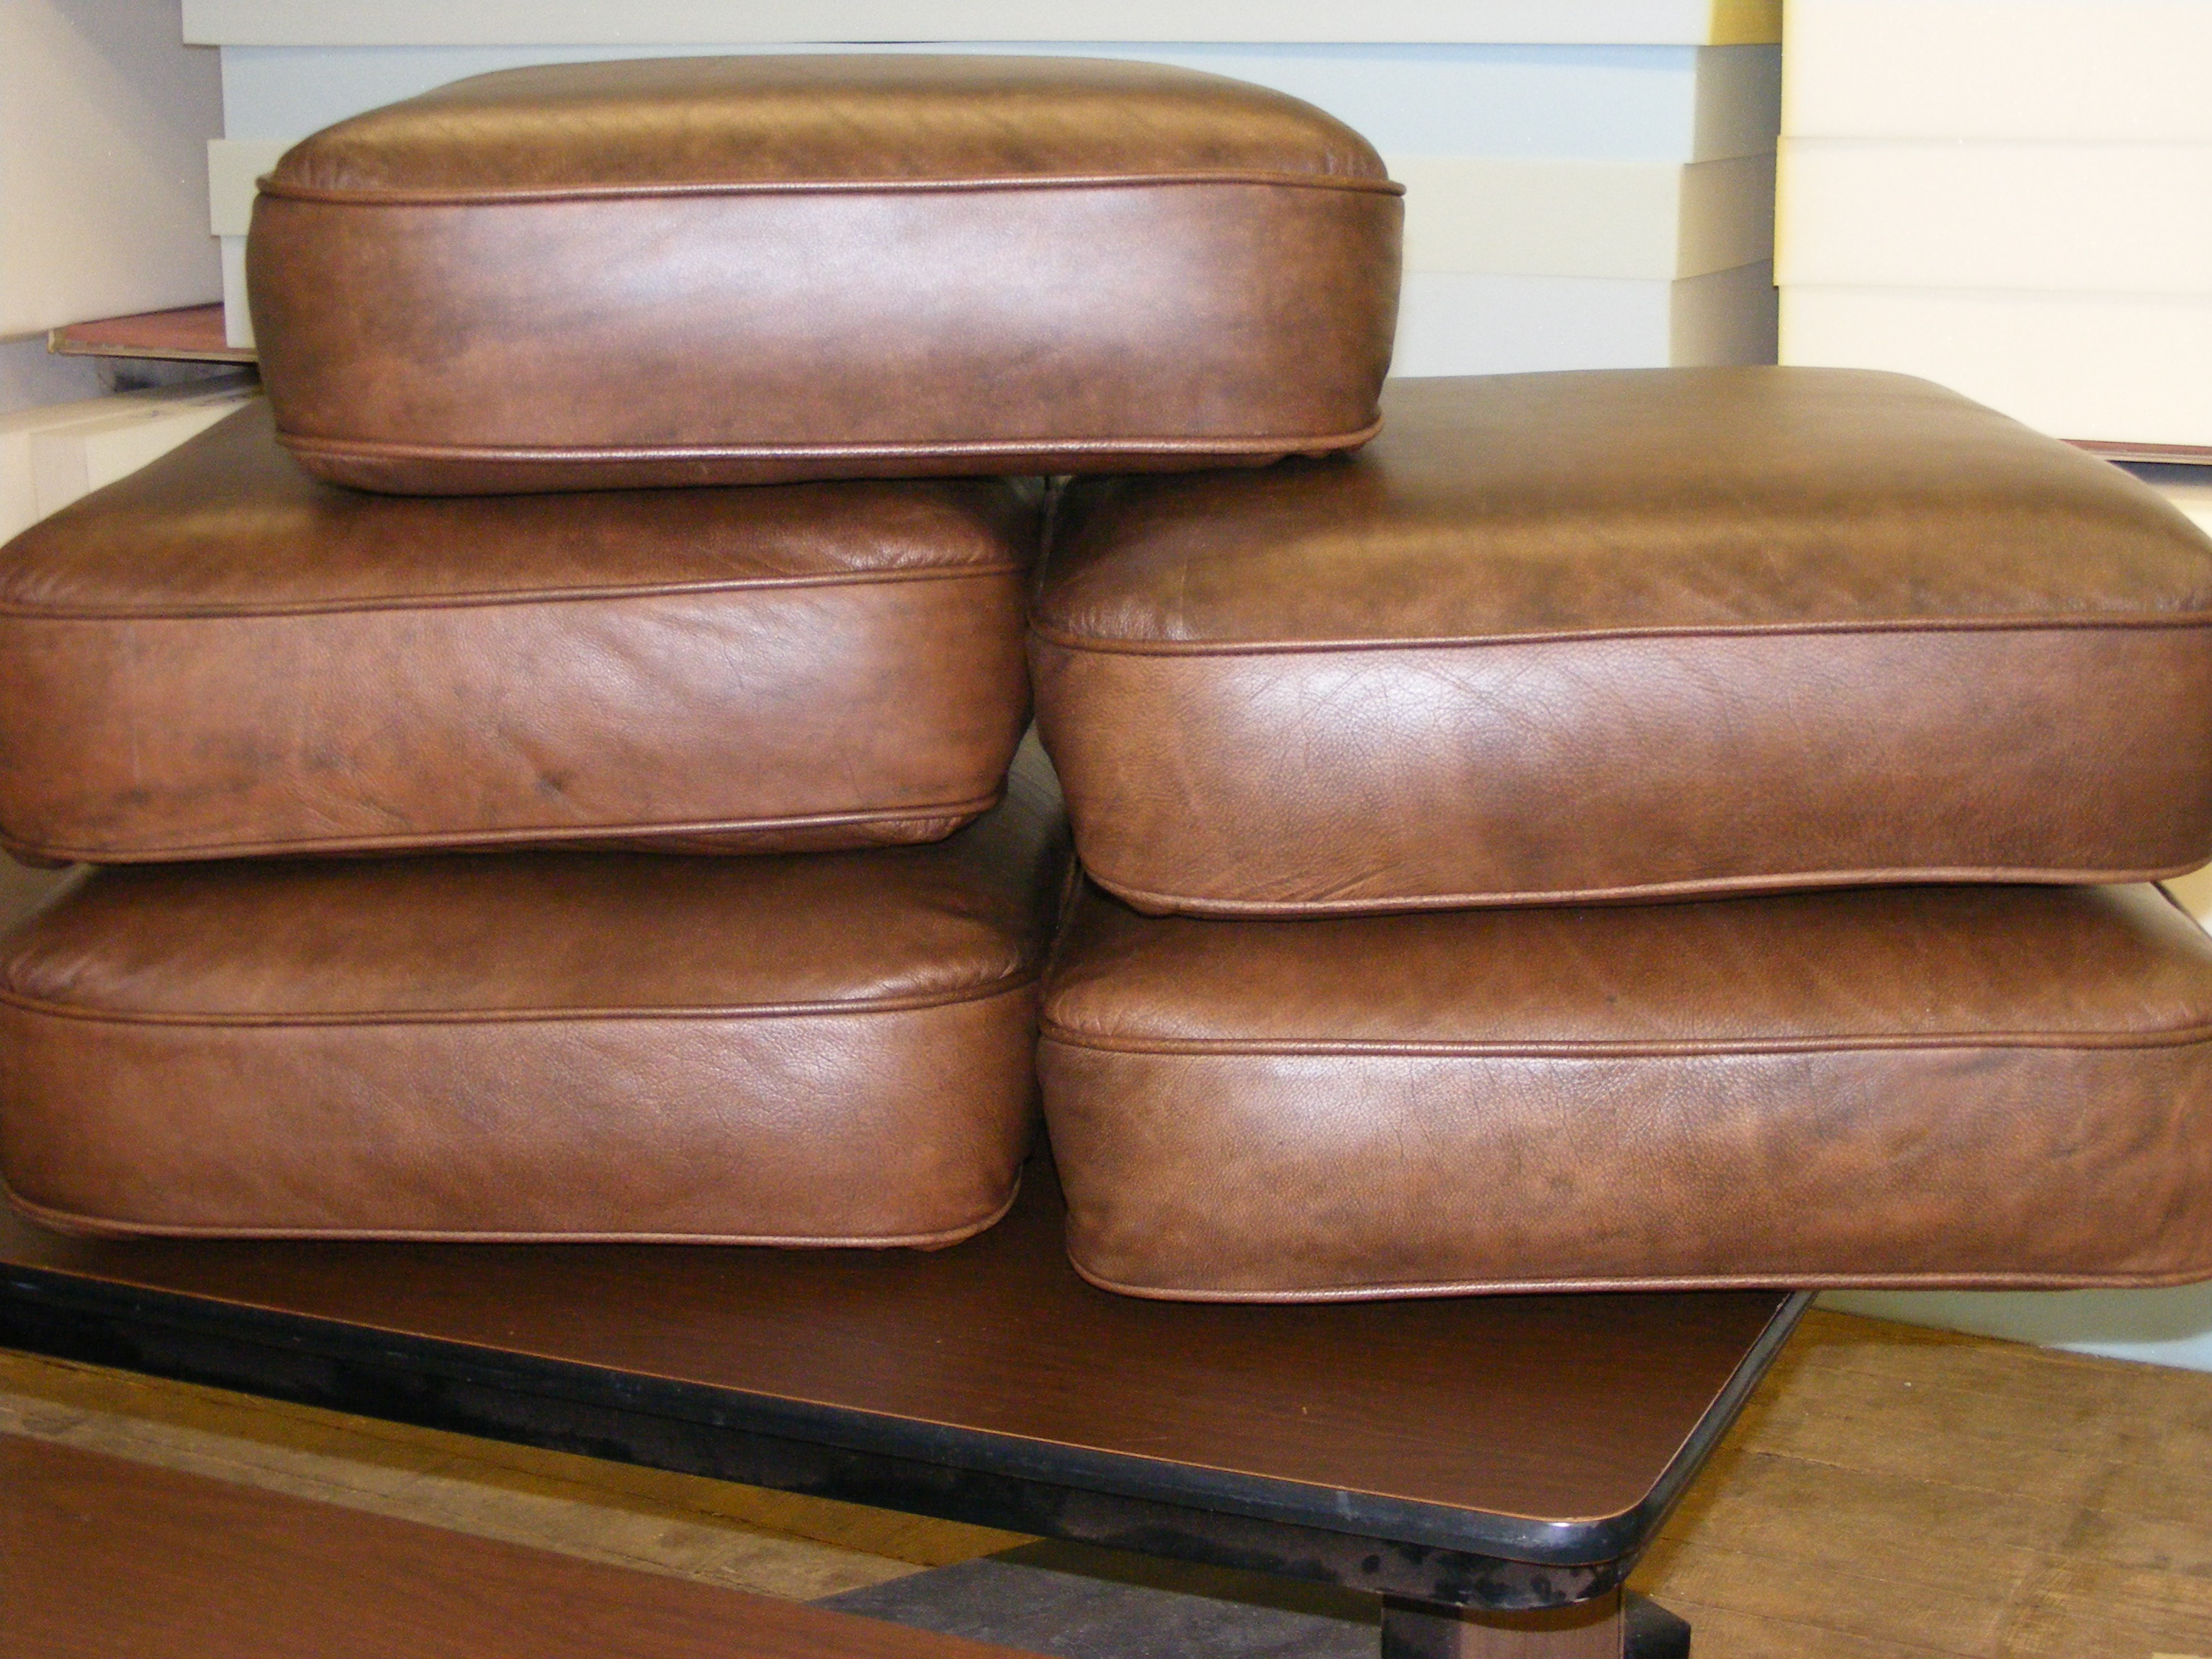 sofa cushions leather cushion cores VIJMOXF